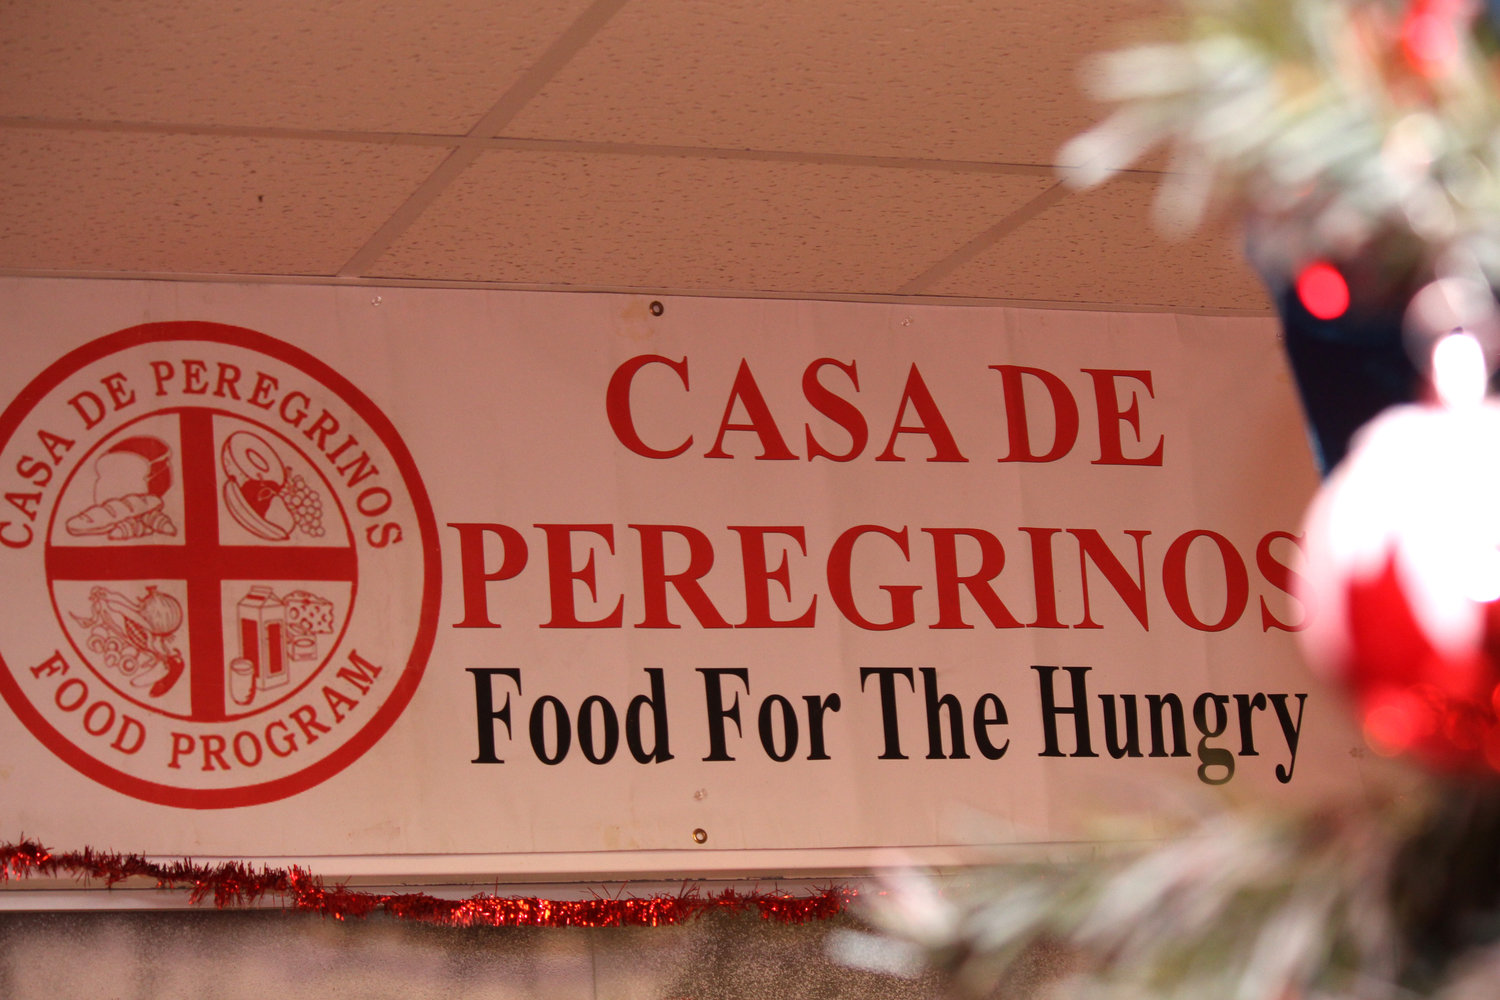 Casa de Peregrinos hosted a Business After Hours event in December 2018.